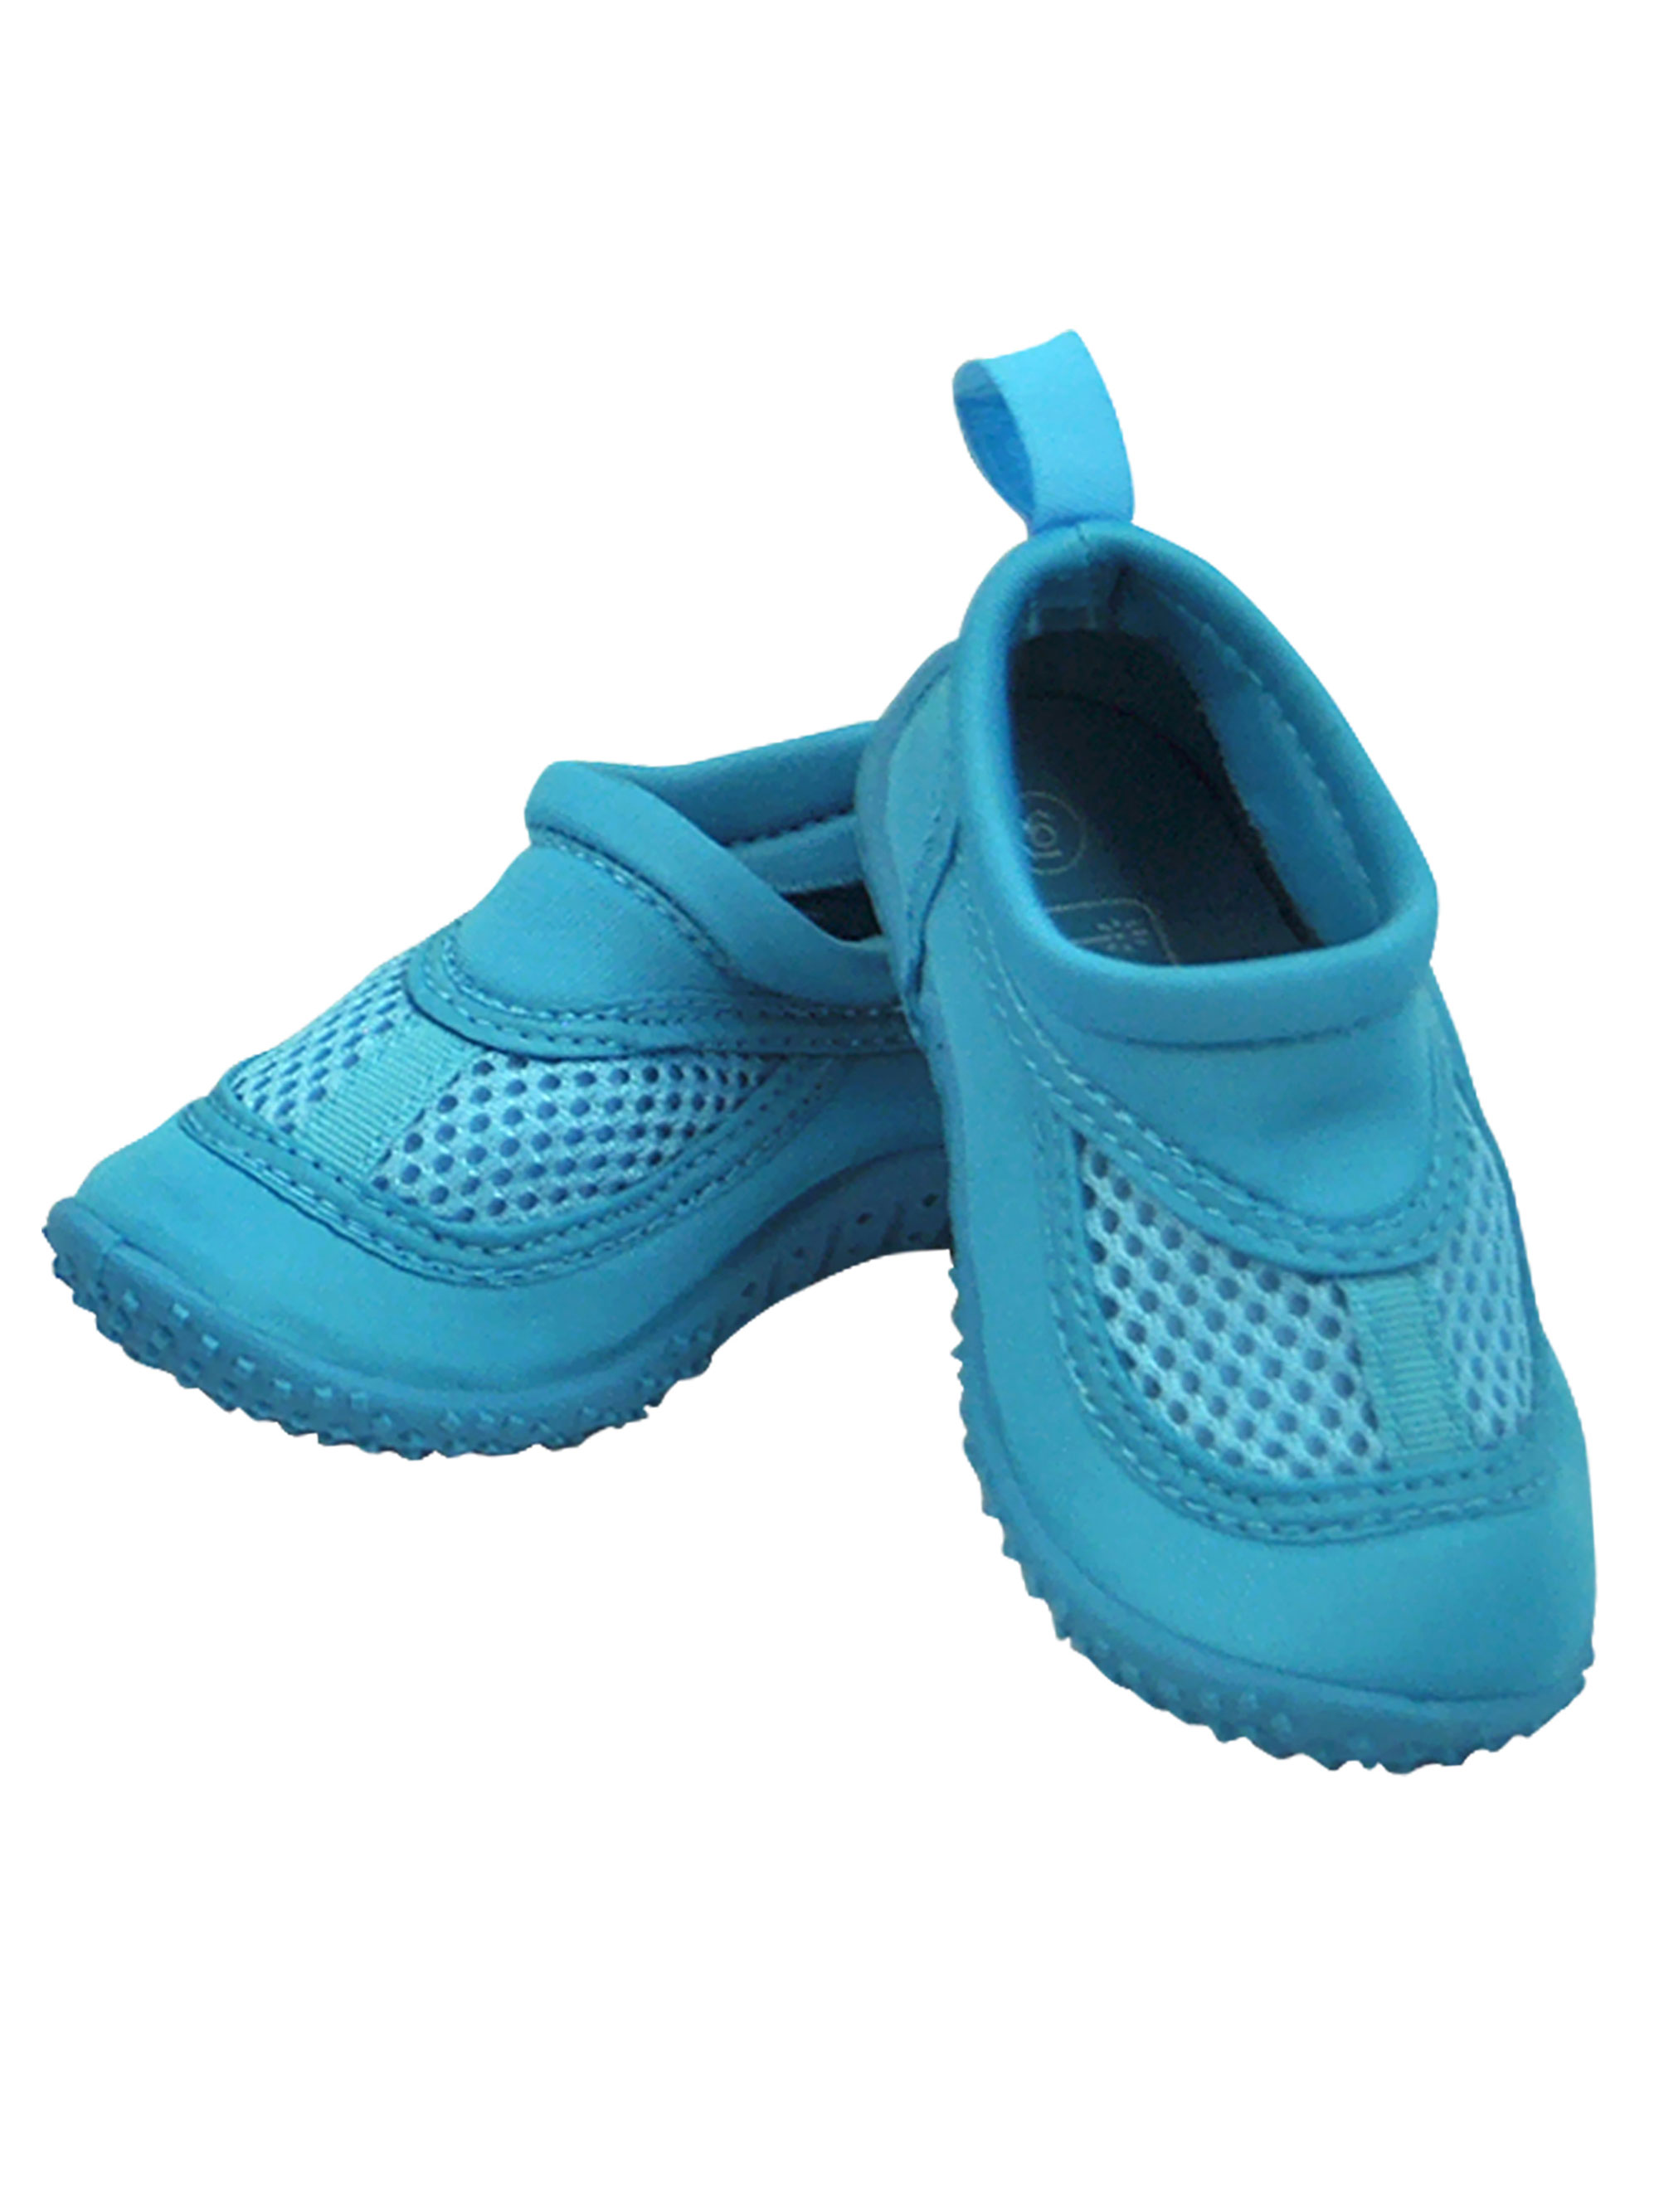 Iplay Unisex Boys or Girls Sand and Water Swim Shoes Kids Aqua Socks for Babies, Infants, Toddlers, and Children Aqua... by iplay